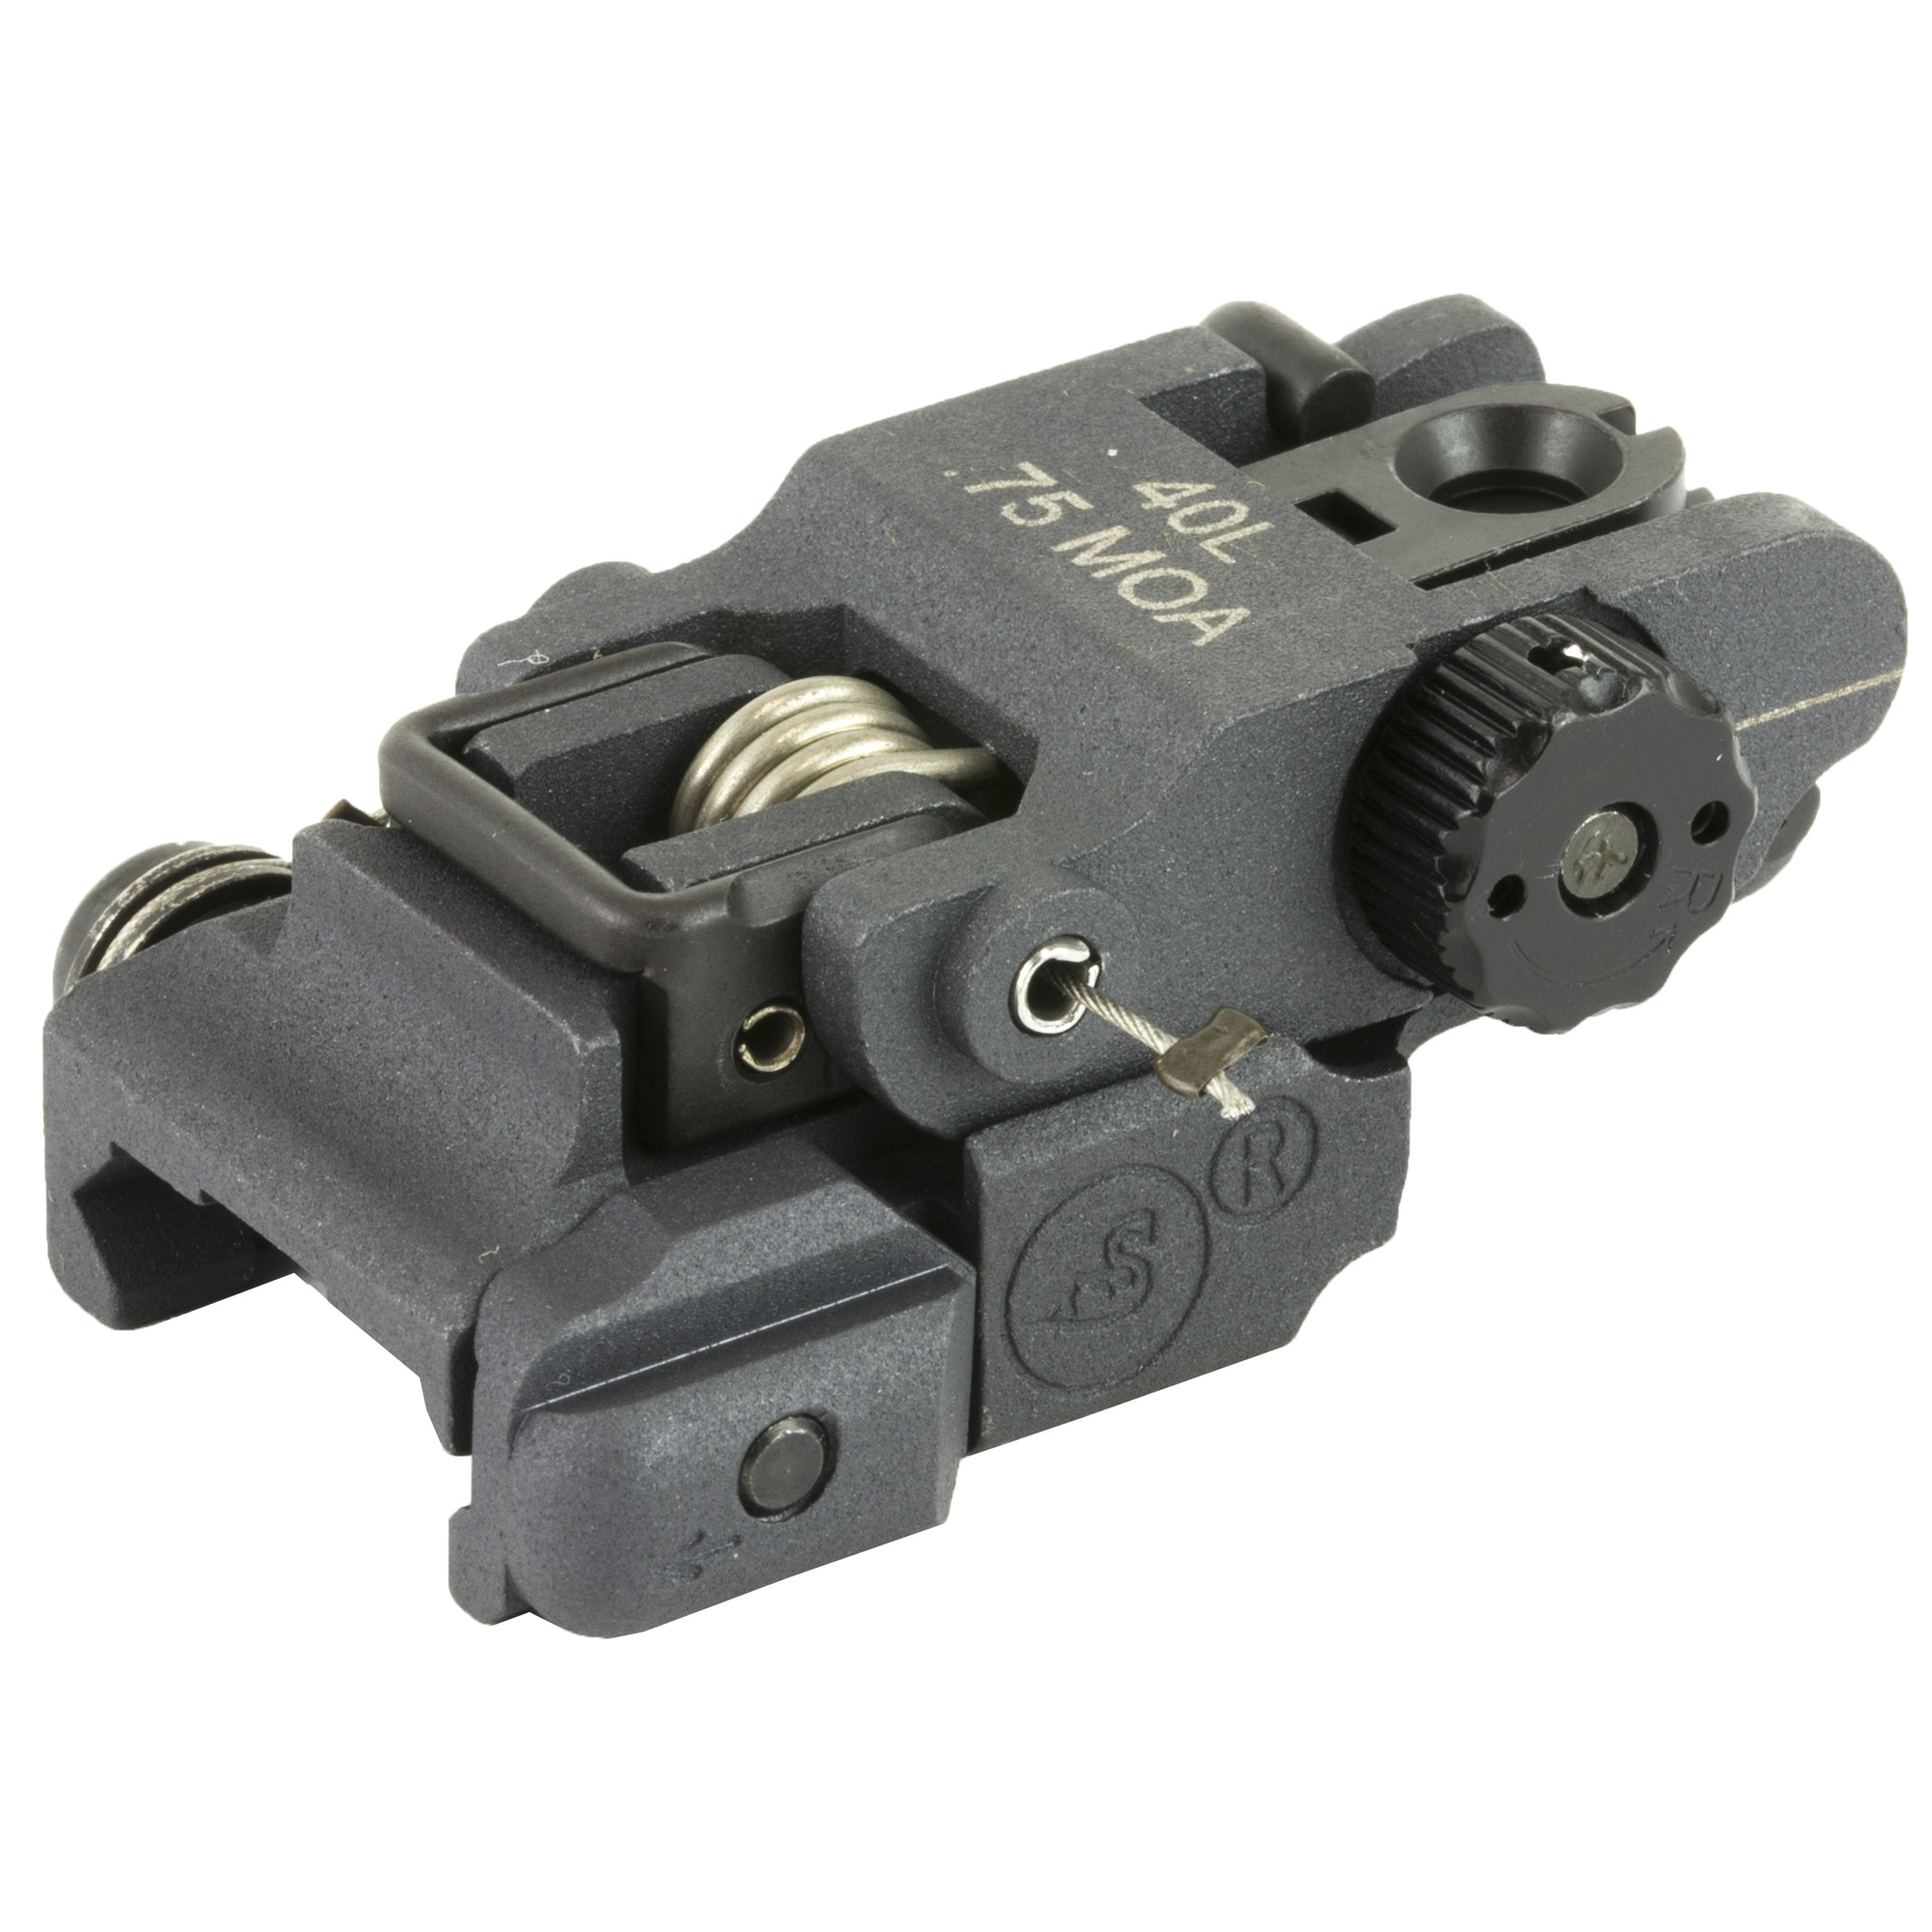 """The #40(TM)L has all the features of their excellent 40A2 sight"""" but has a lower profile"""" allowing more clearance for mounting optics to your flat-top receiver and allows lower mounting"""" miniaturized windage knob with .75 MOA adjustment and a very new and unique dual aperture. Folded height is only .610""""."""